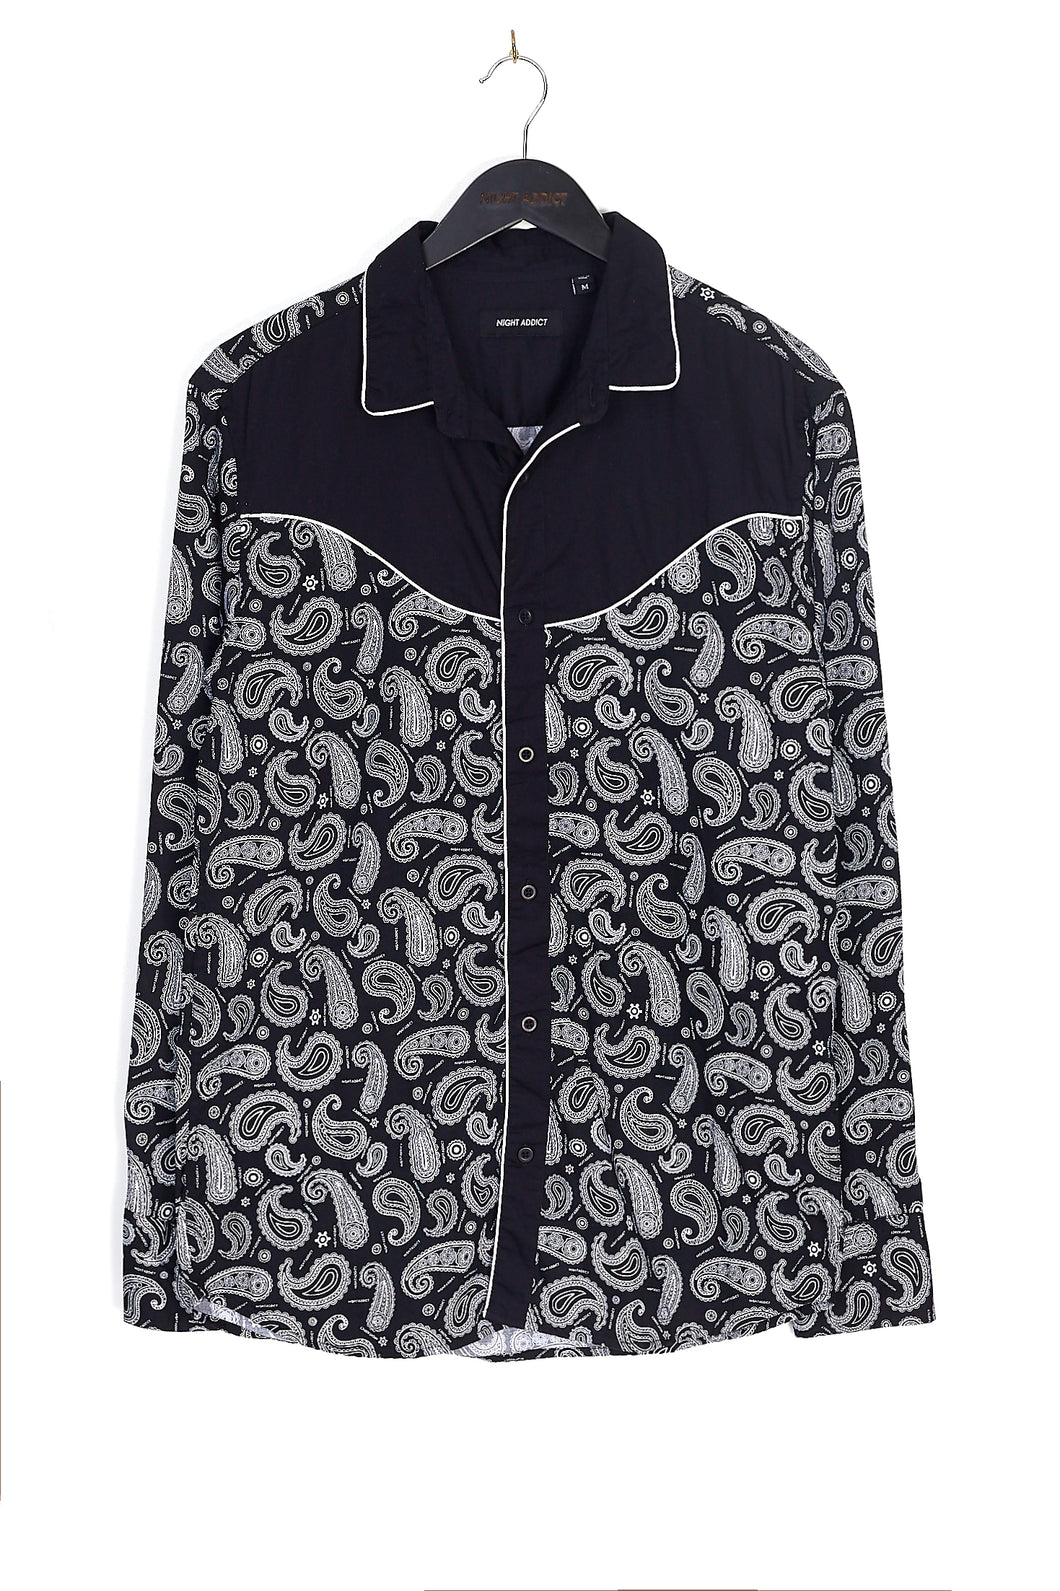 NIGHT ADDICT PAISLEY PRINT LONG SLEEVE SHIRT